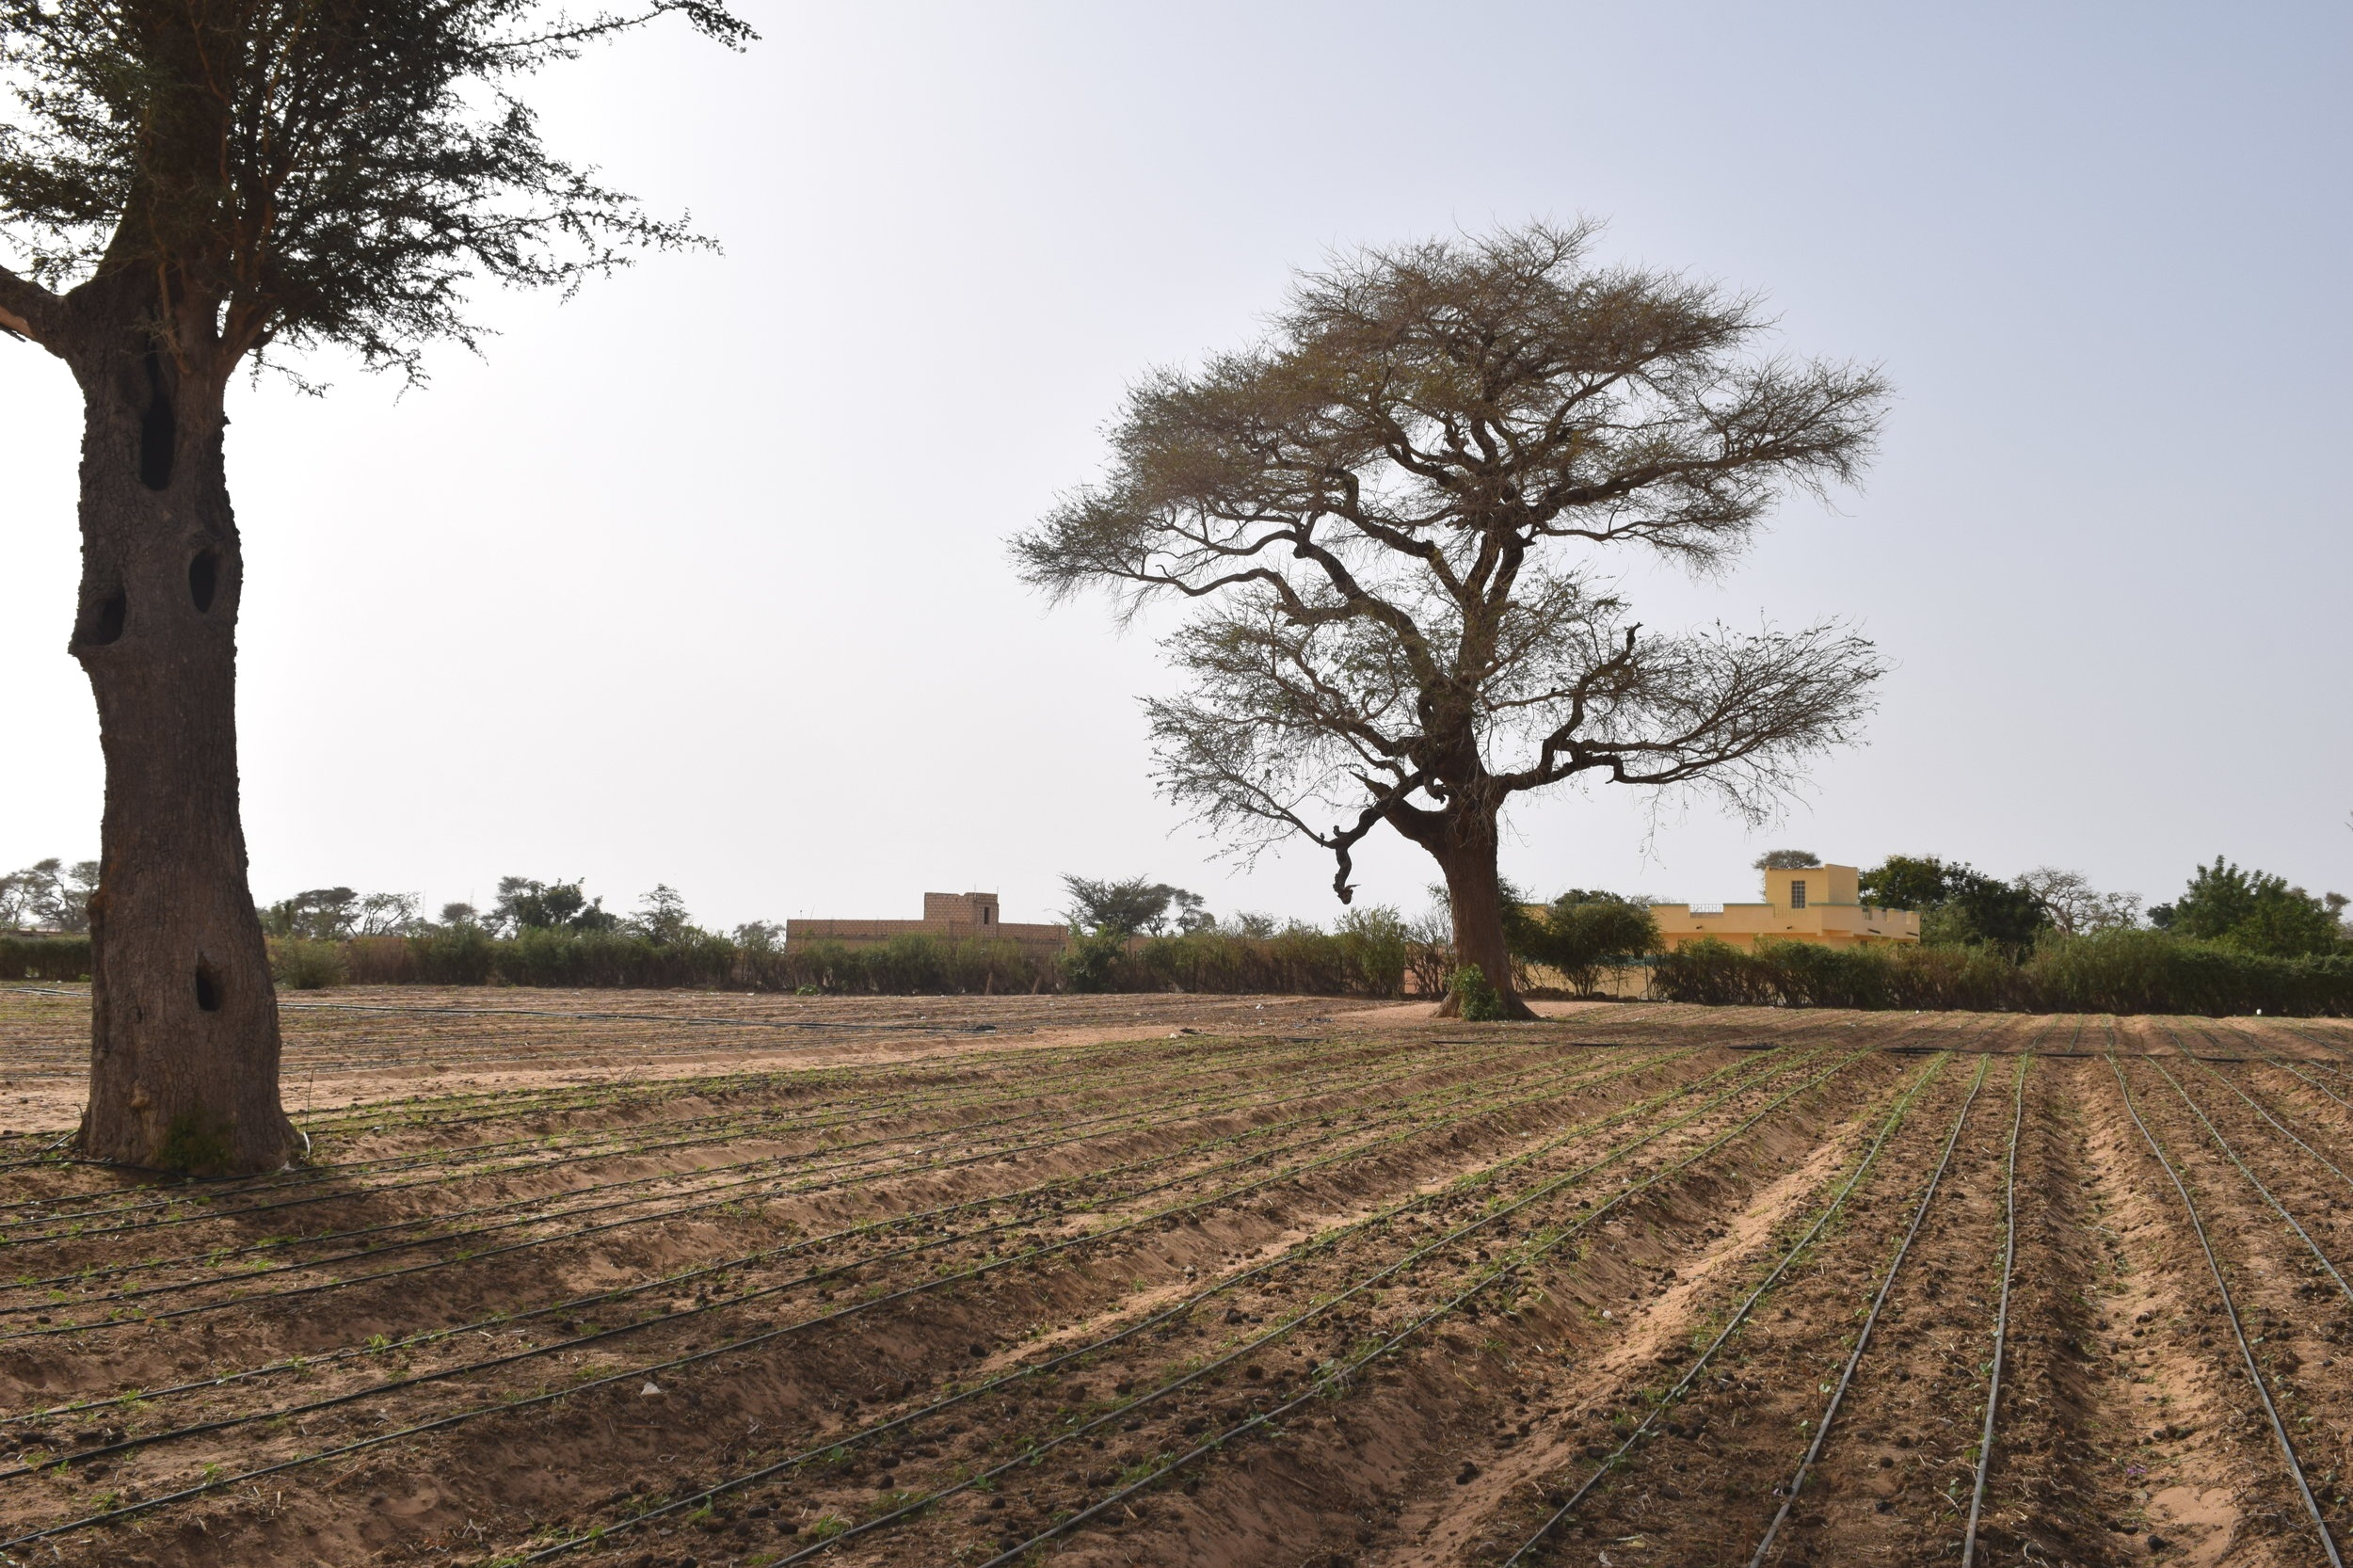 Drip irrigation project in Senegal.